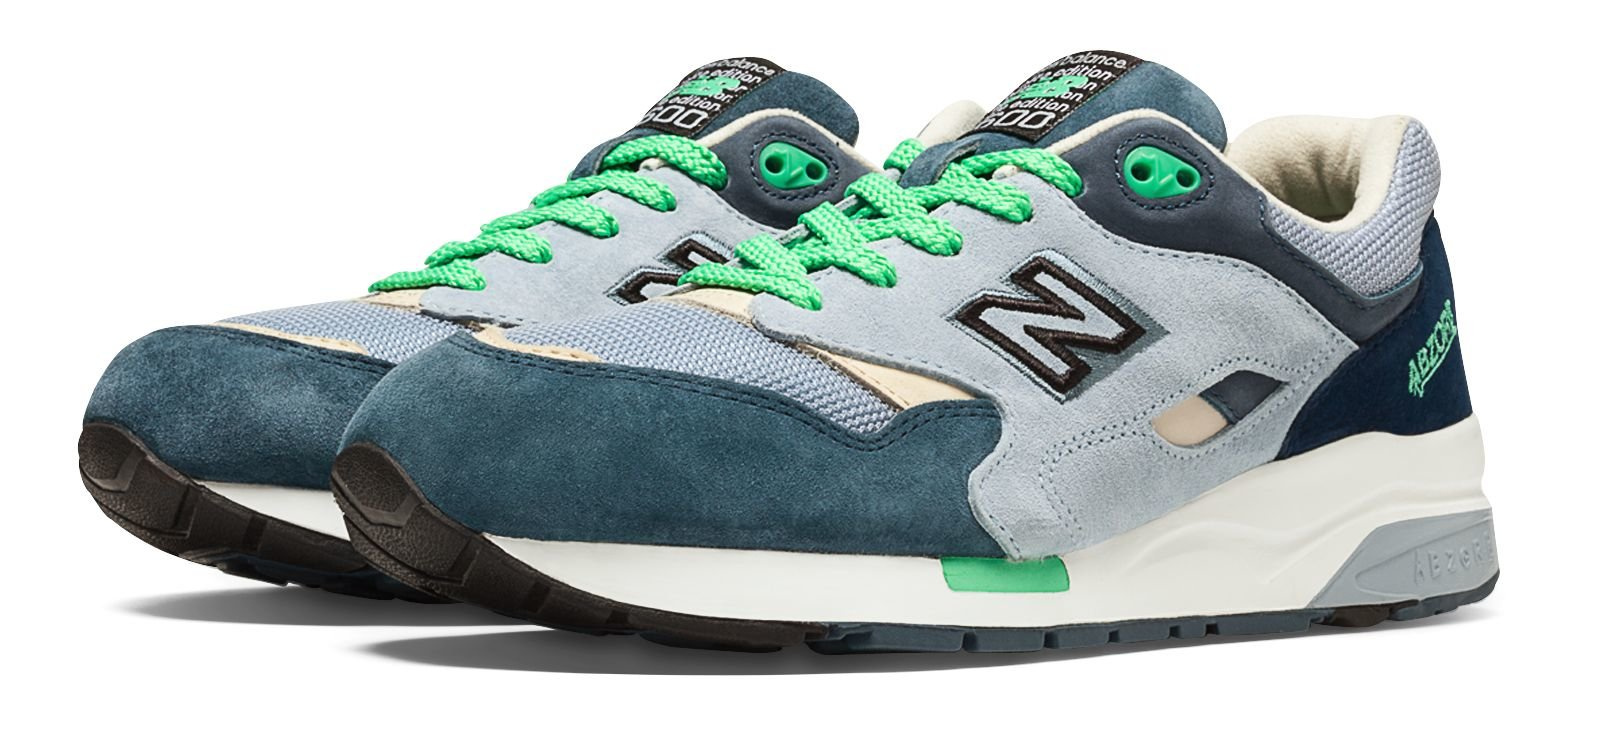 new balance men's classic elite 1600